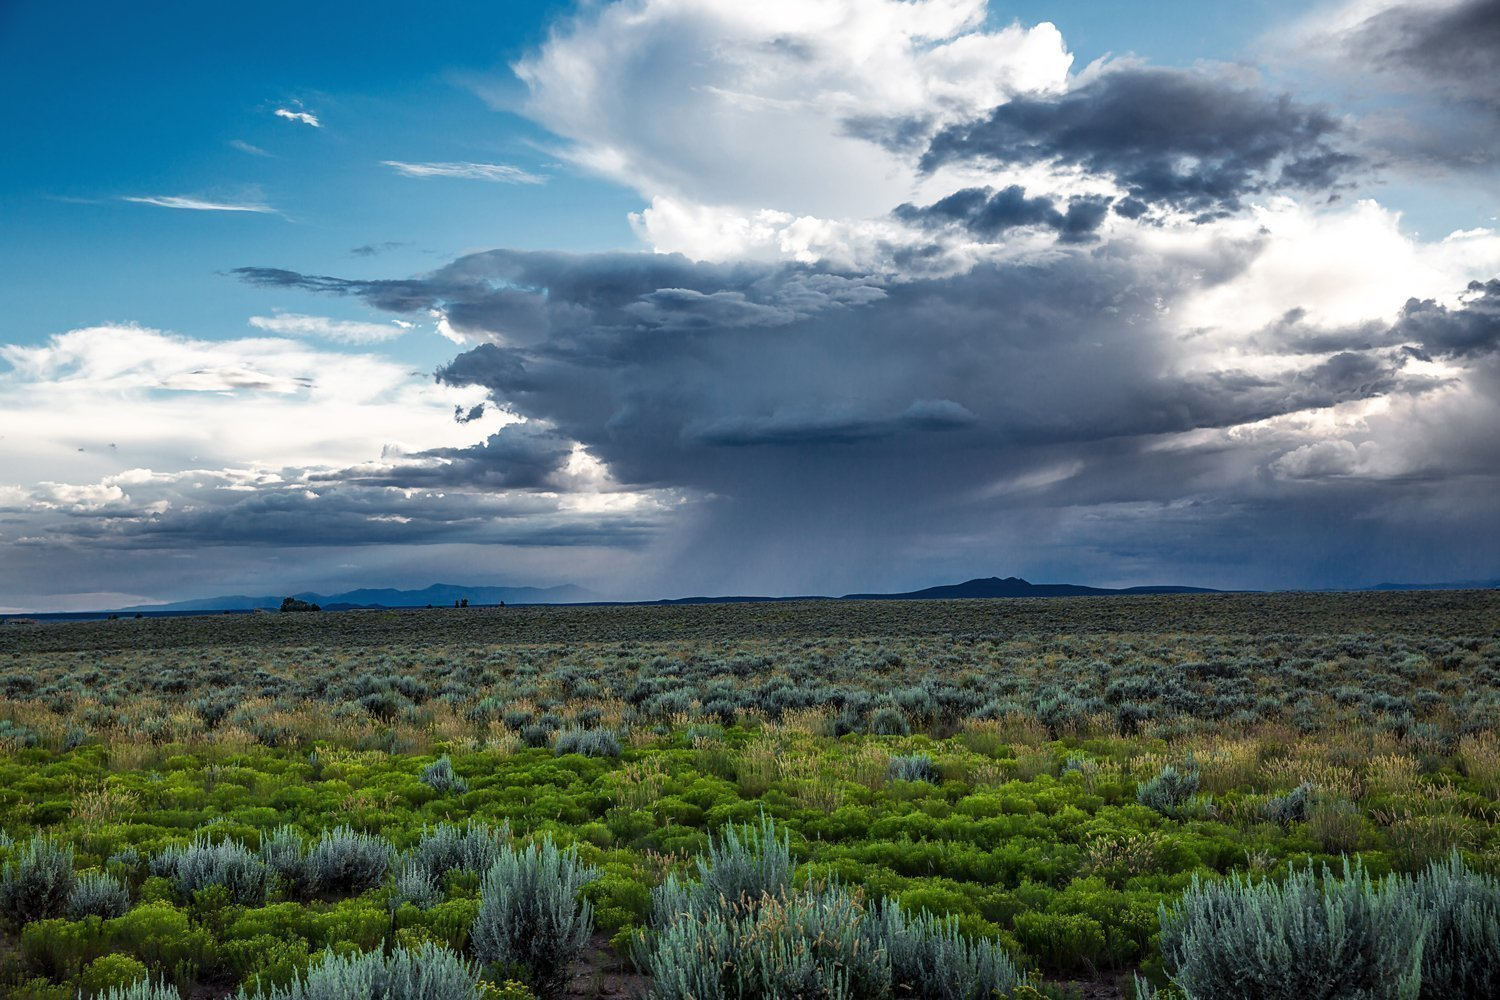 New Mexico Photography Art Print - Picture of Summer Thunderstorm Near Taos Monsoon Desert Decor for Home Decoration 5x7 to 30x45